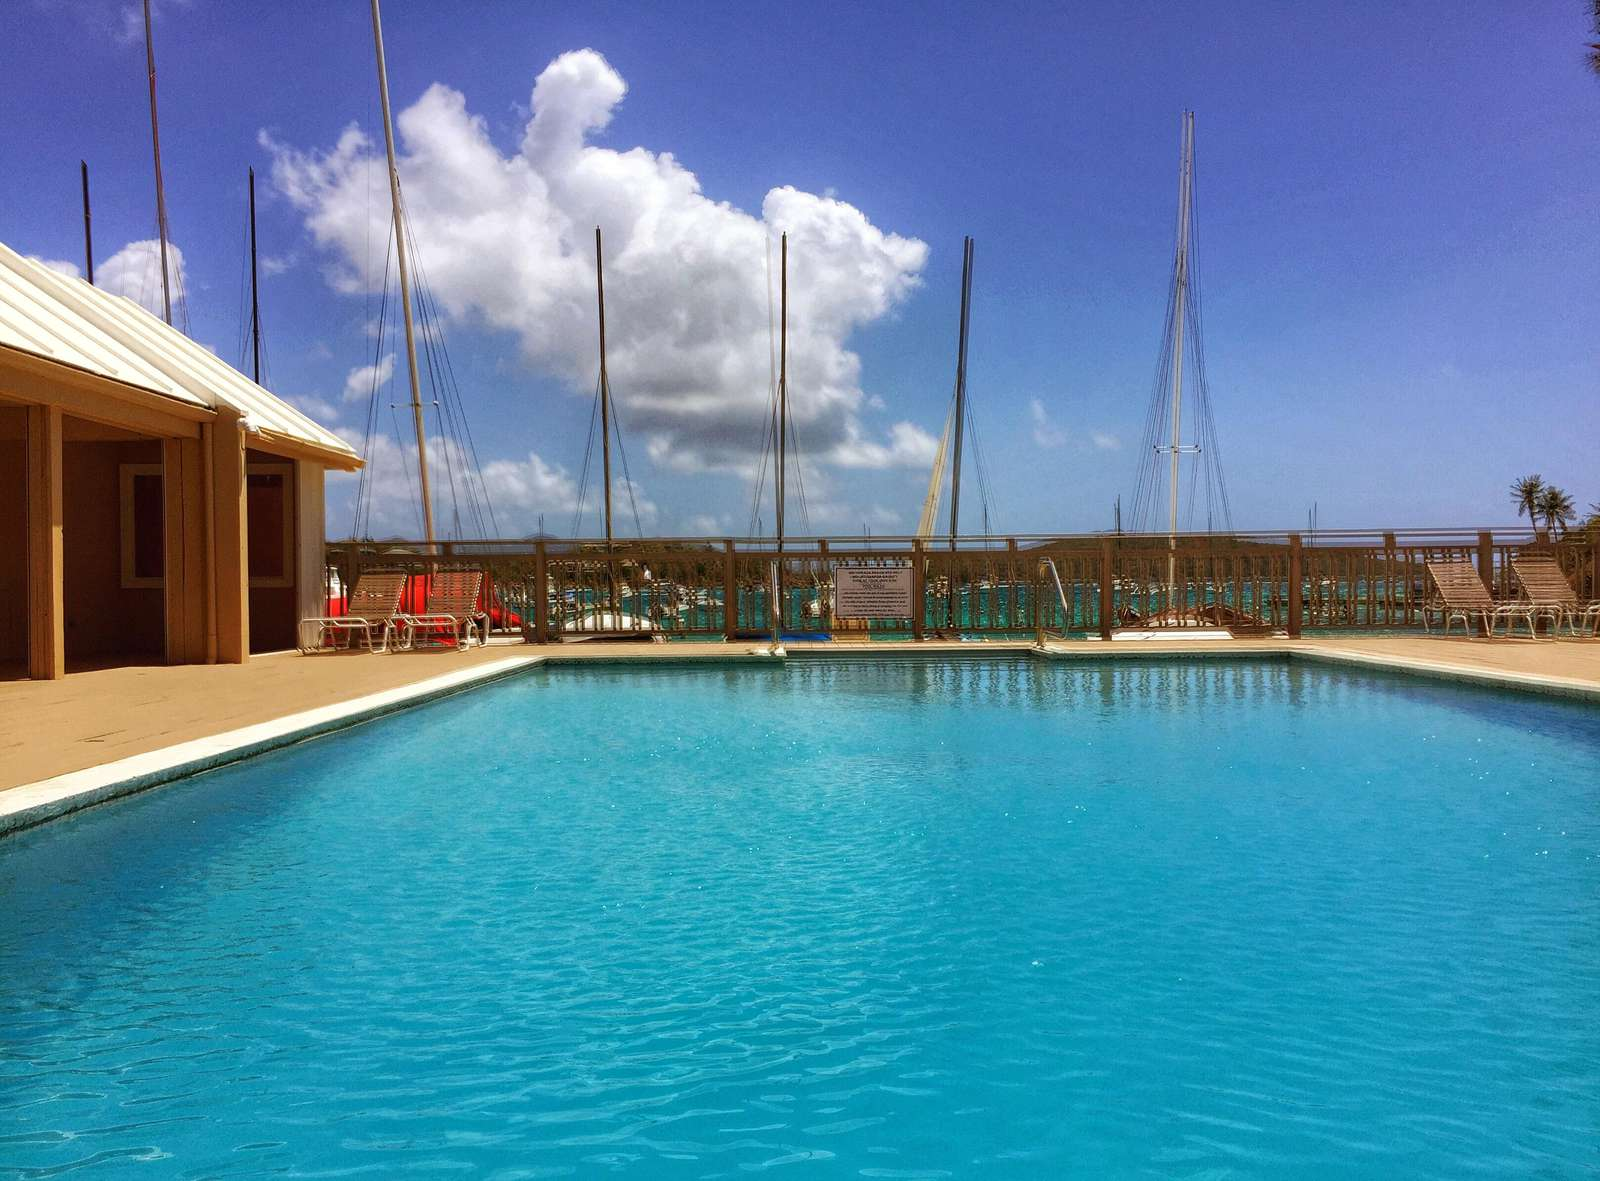 Access to the pool that overlooks the marina